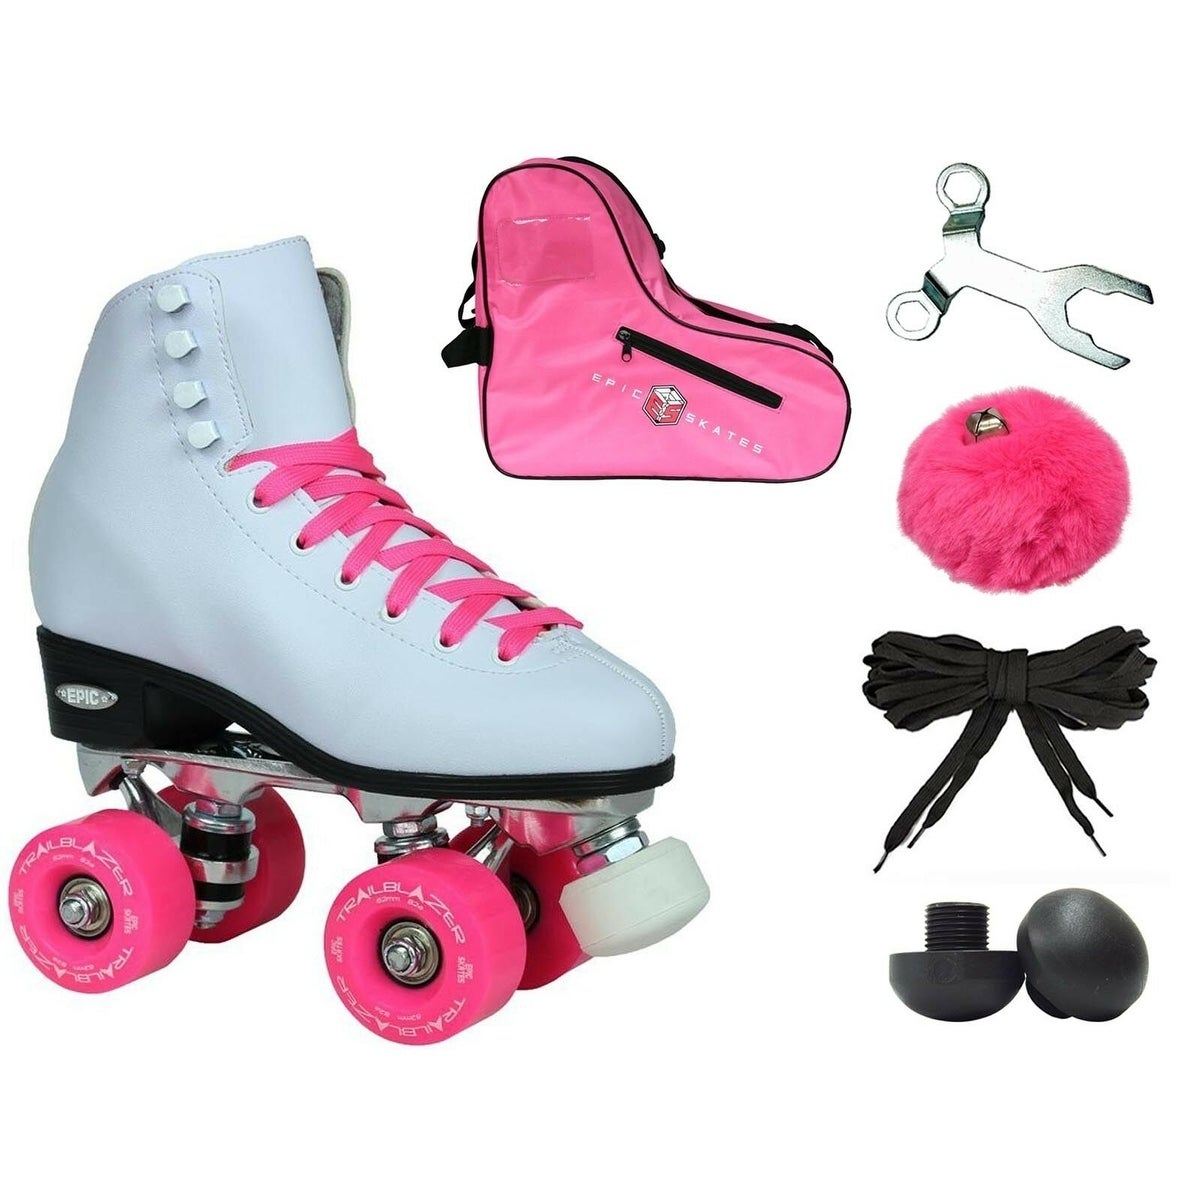 Epic White and Pink Classic High-Top Quad Roller Skate Bu...